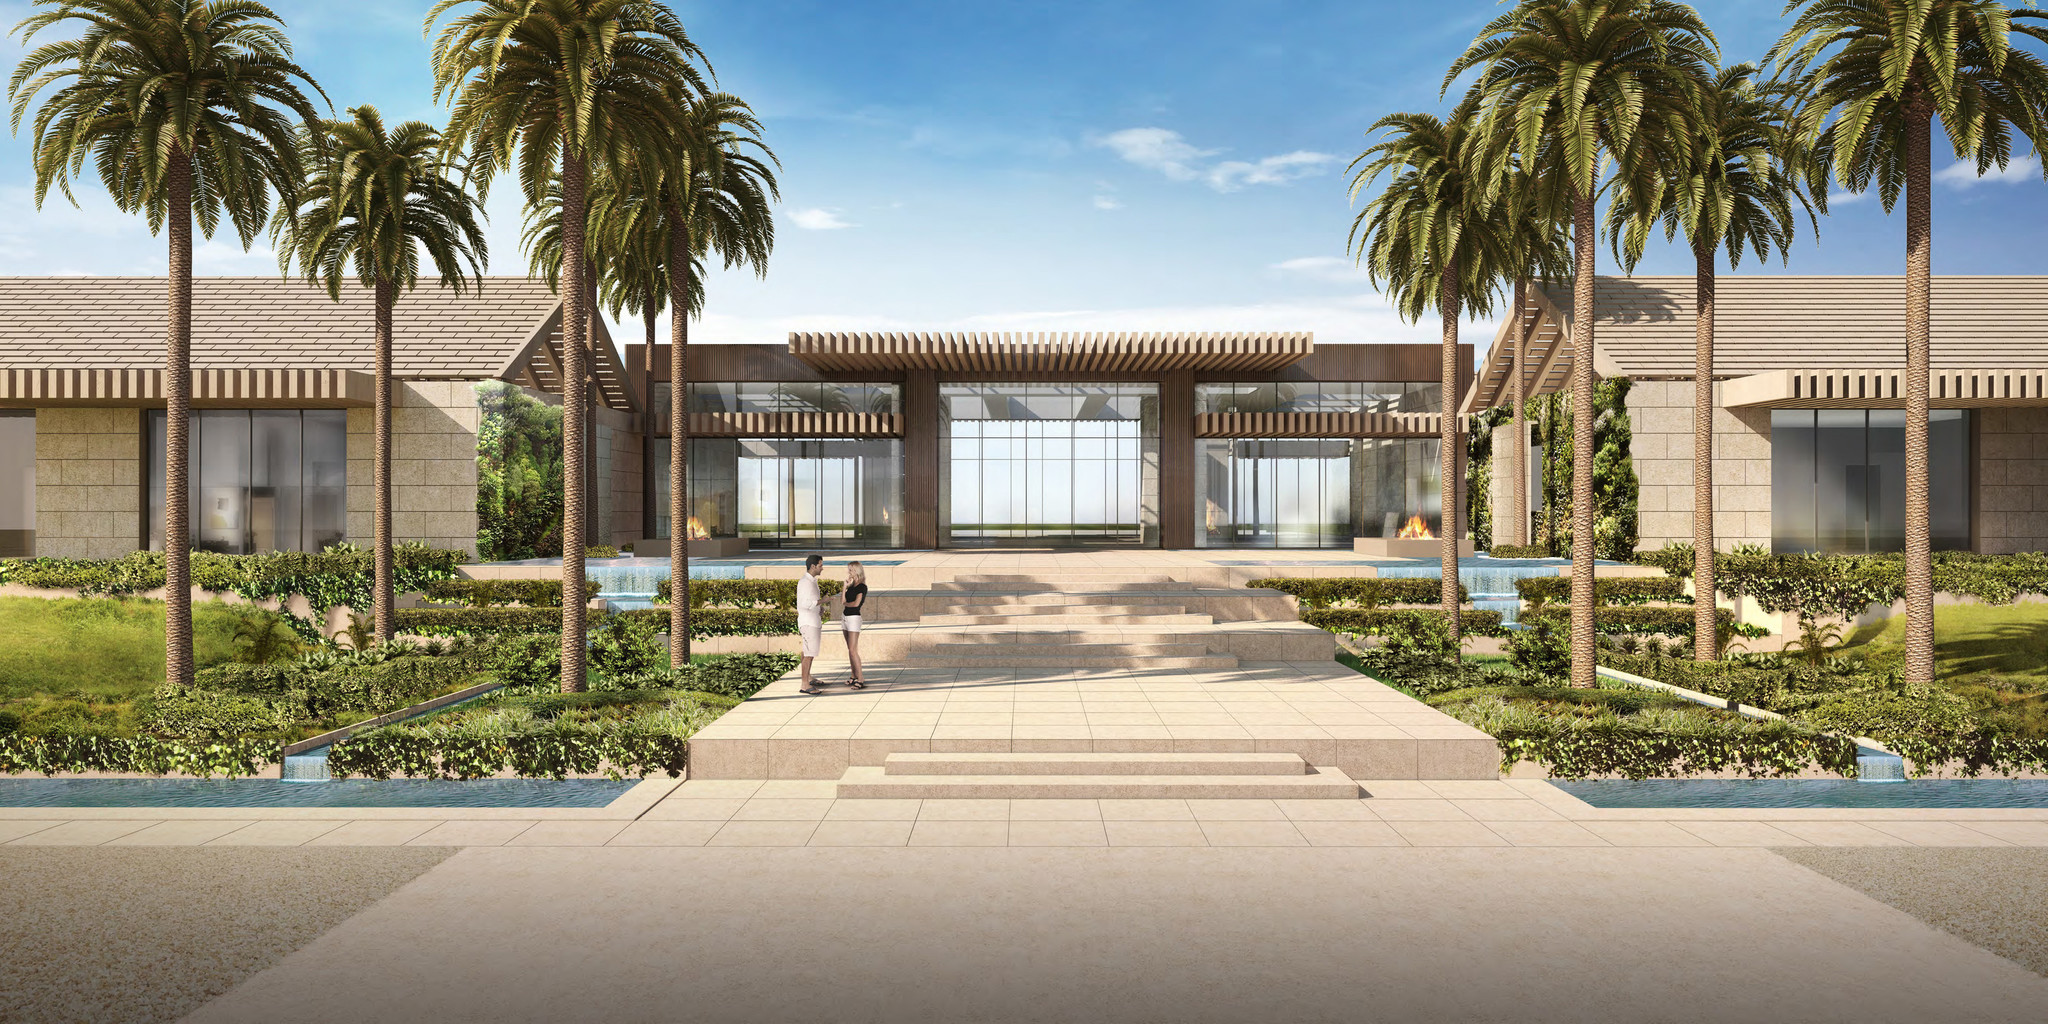 Longer than a football field, Ken Griffin's beach home praised for its modesty